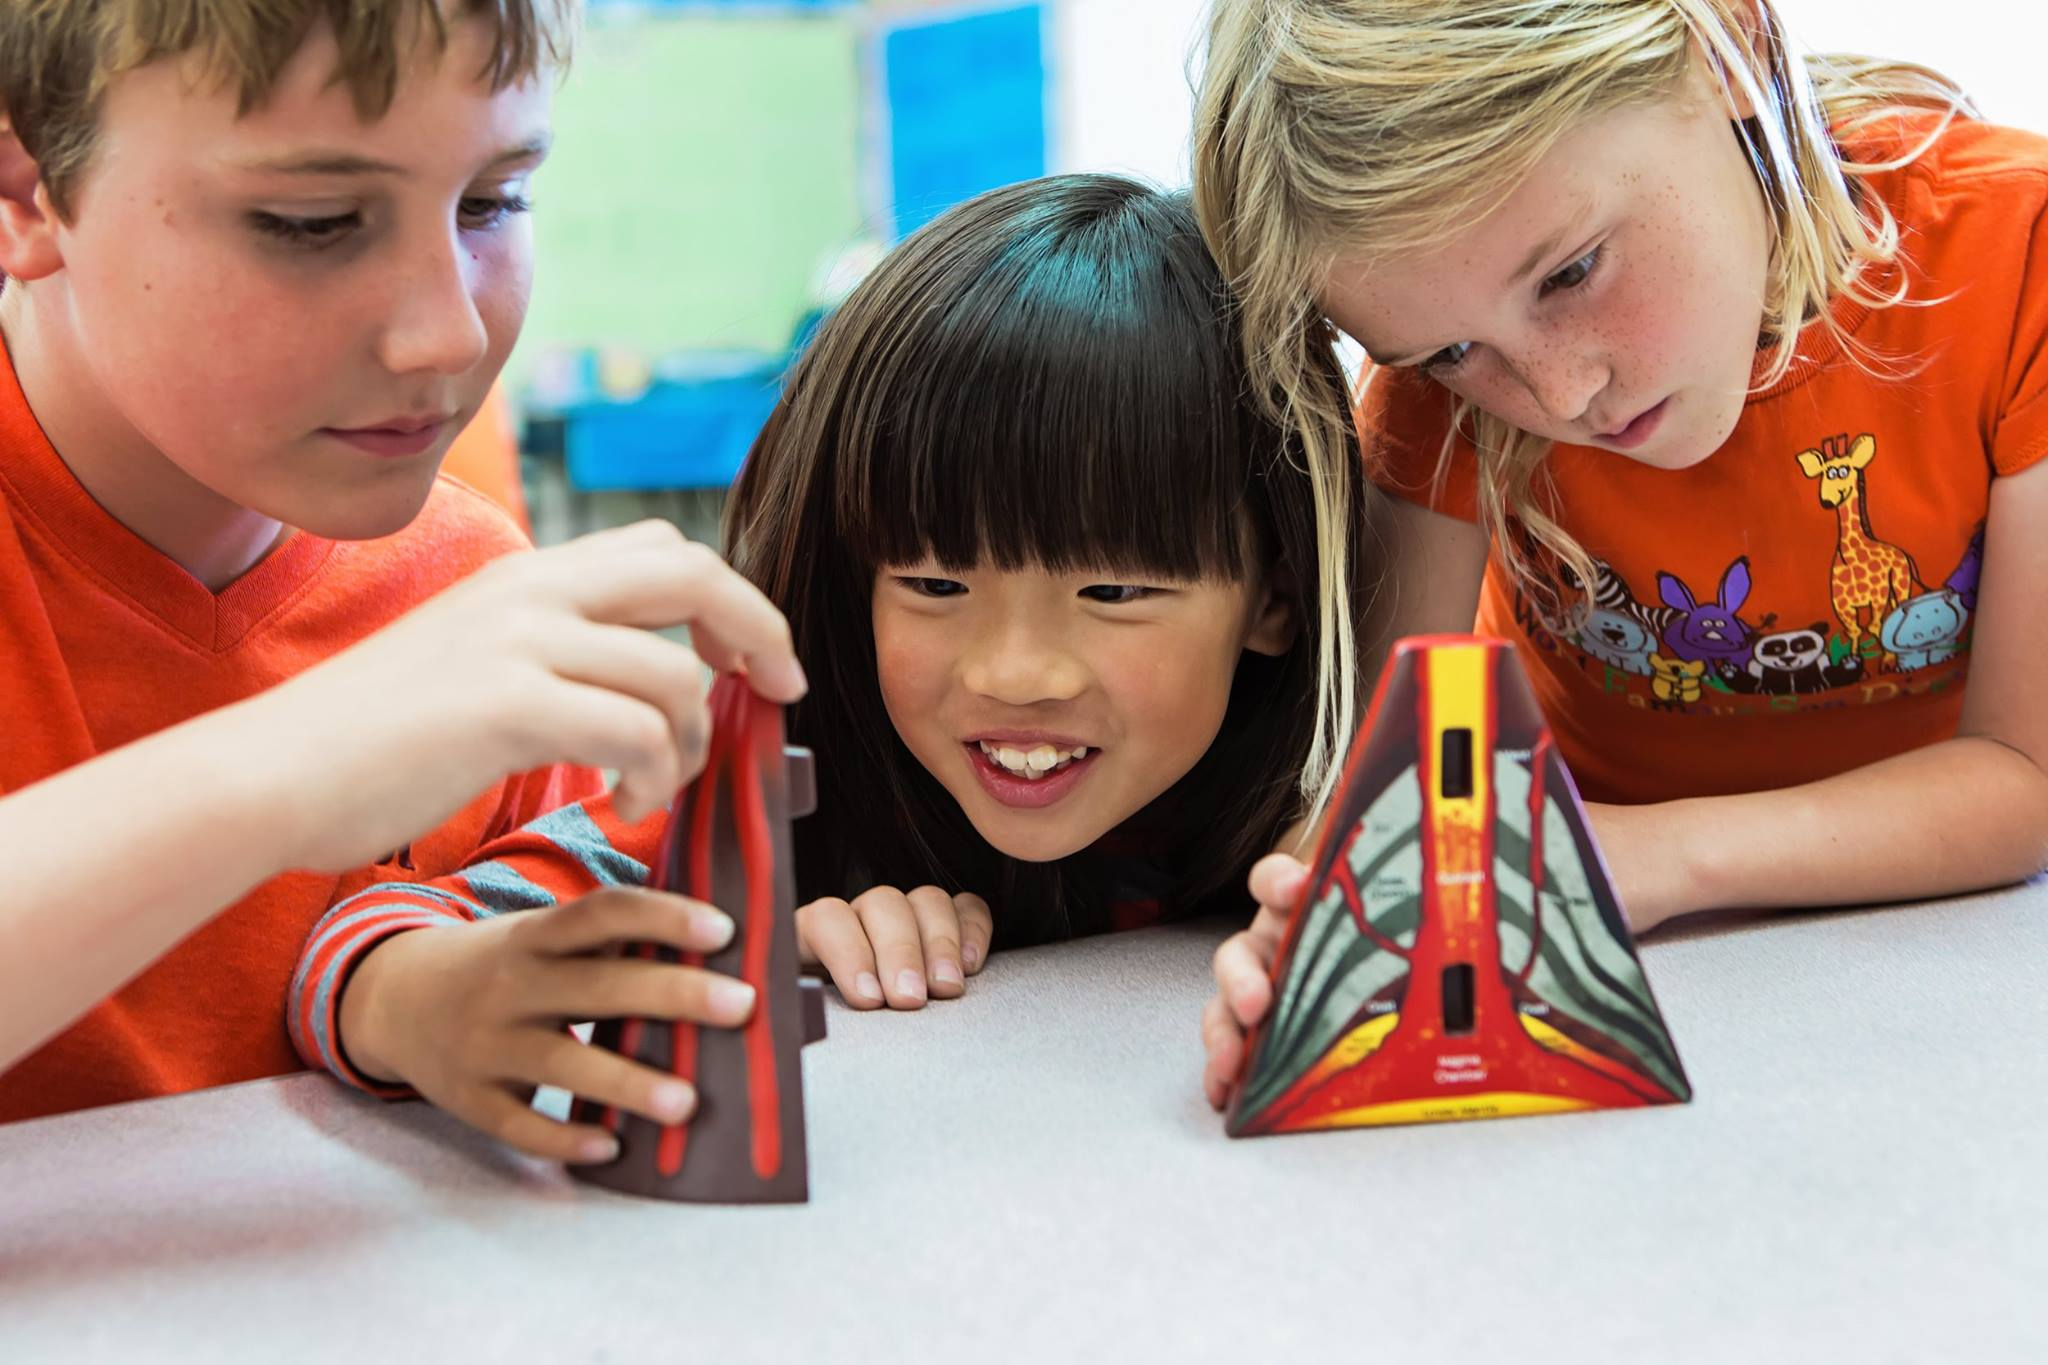 Steam Literacy - Innovators, problem-solvers, and leaders of tomorrow, using STEAM fields to develop human skills such as critical thinking, adaptability, and imagination